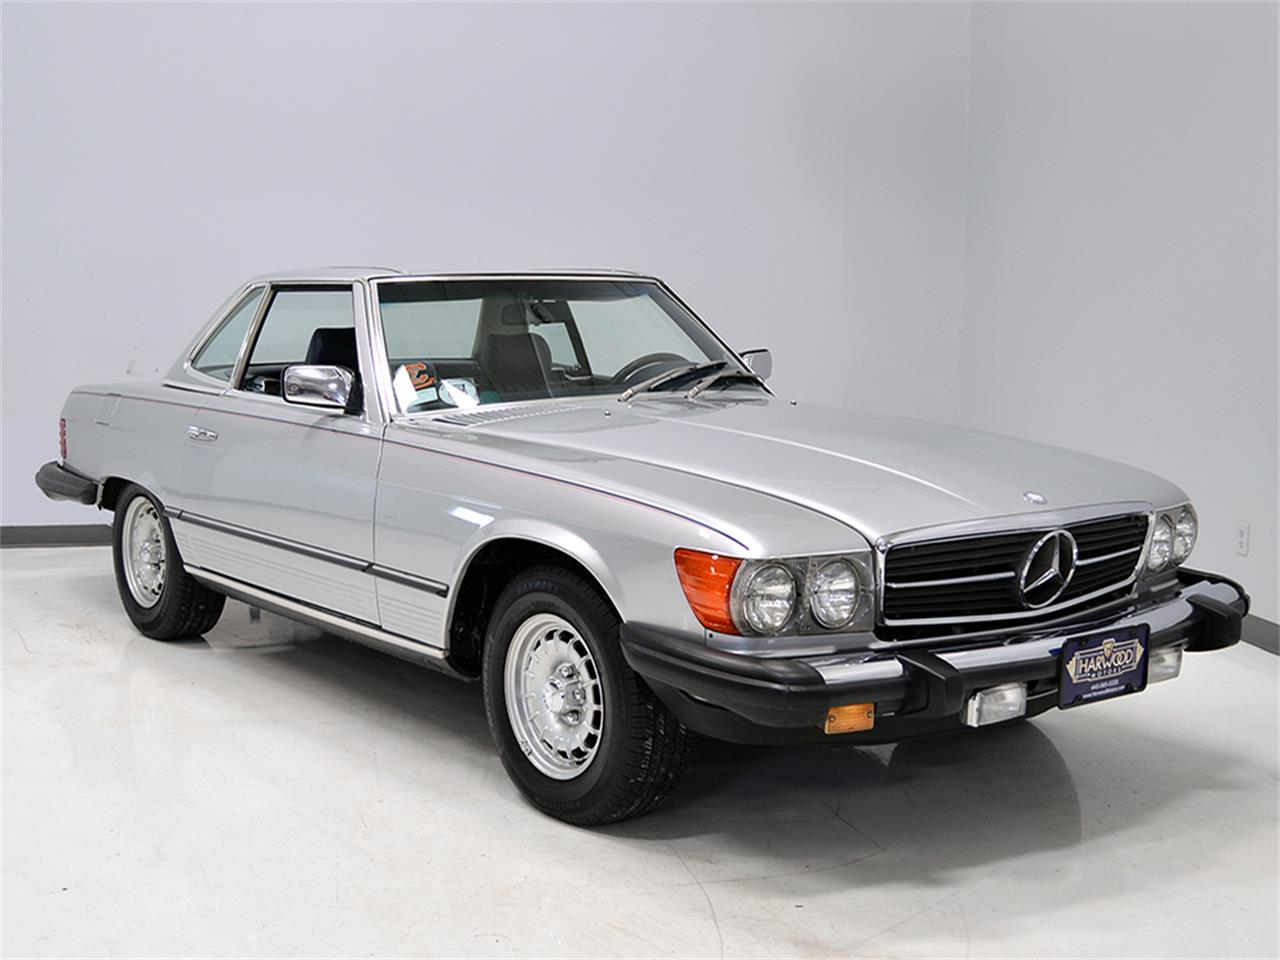 Large Picture of '84 Mercedes-Benz 380SL - $17,900.00 - KA2F